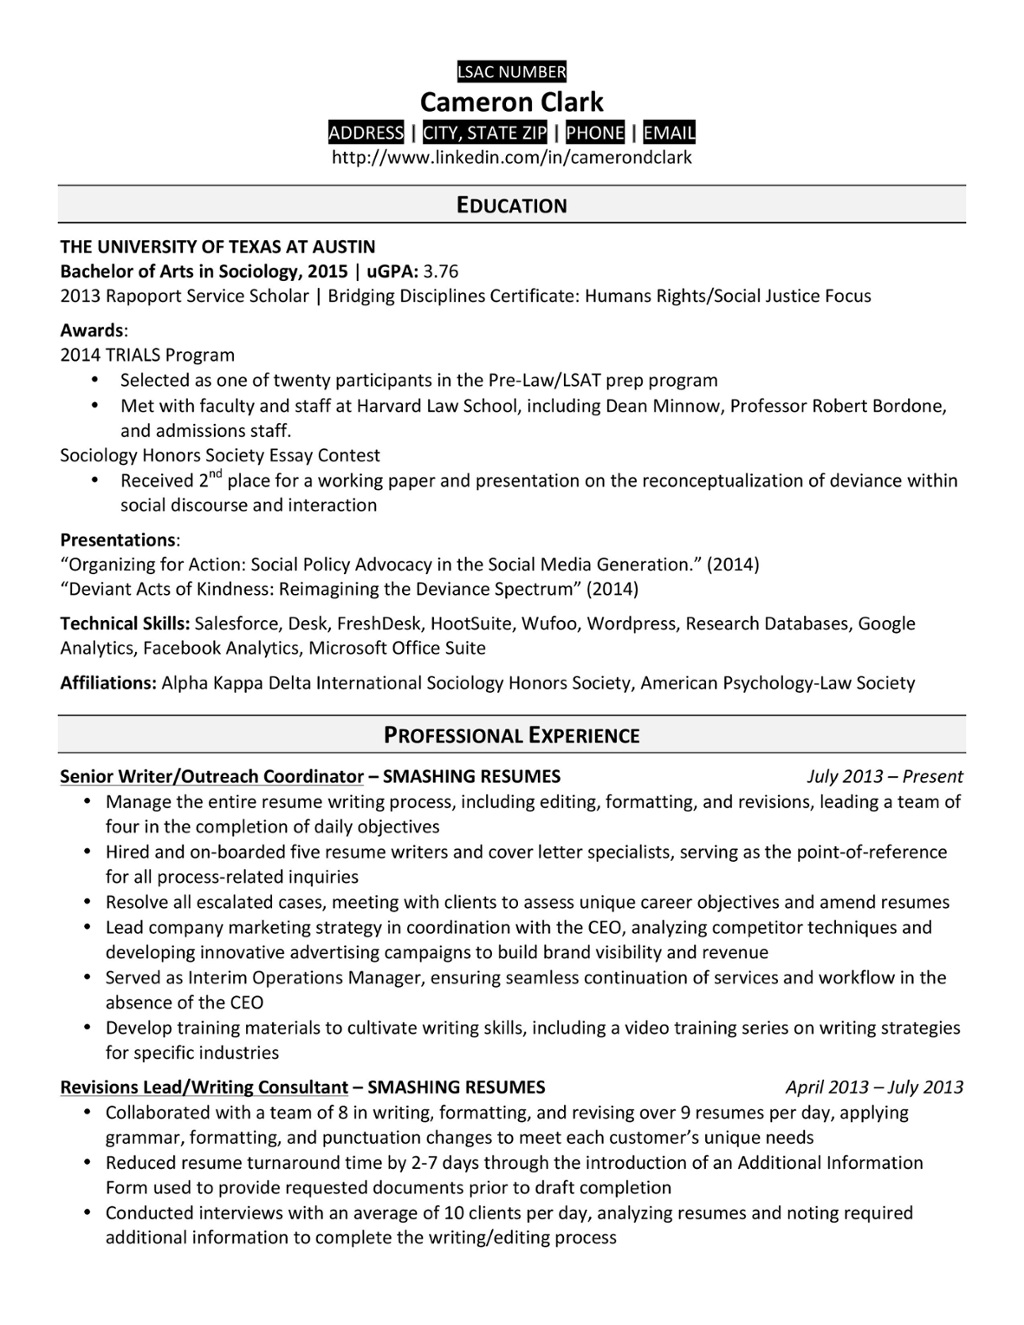 harvard law school resumes - Arvard Resume Template